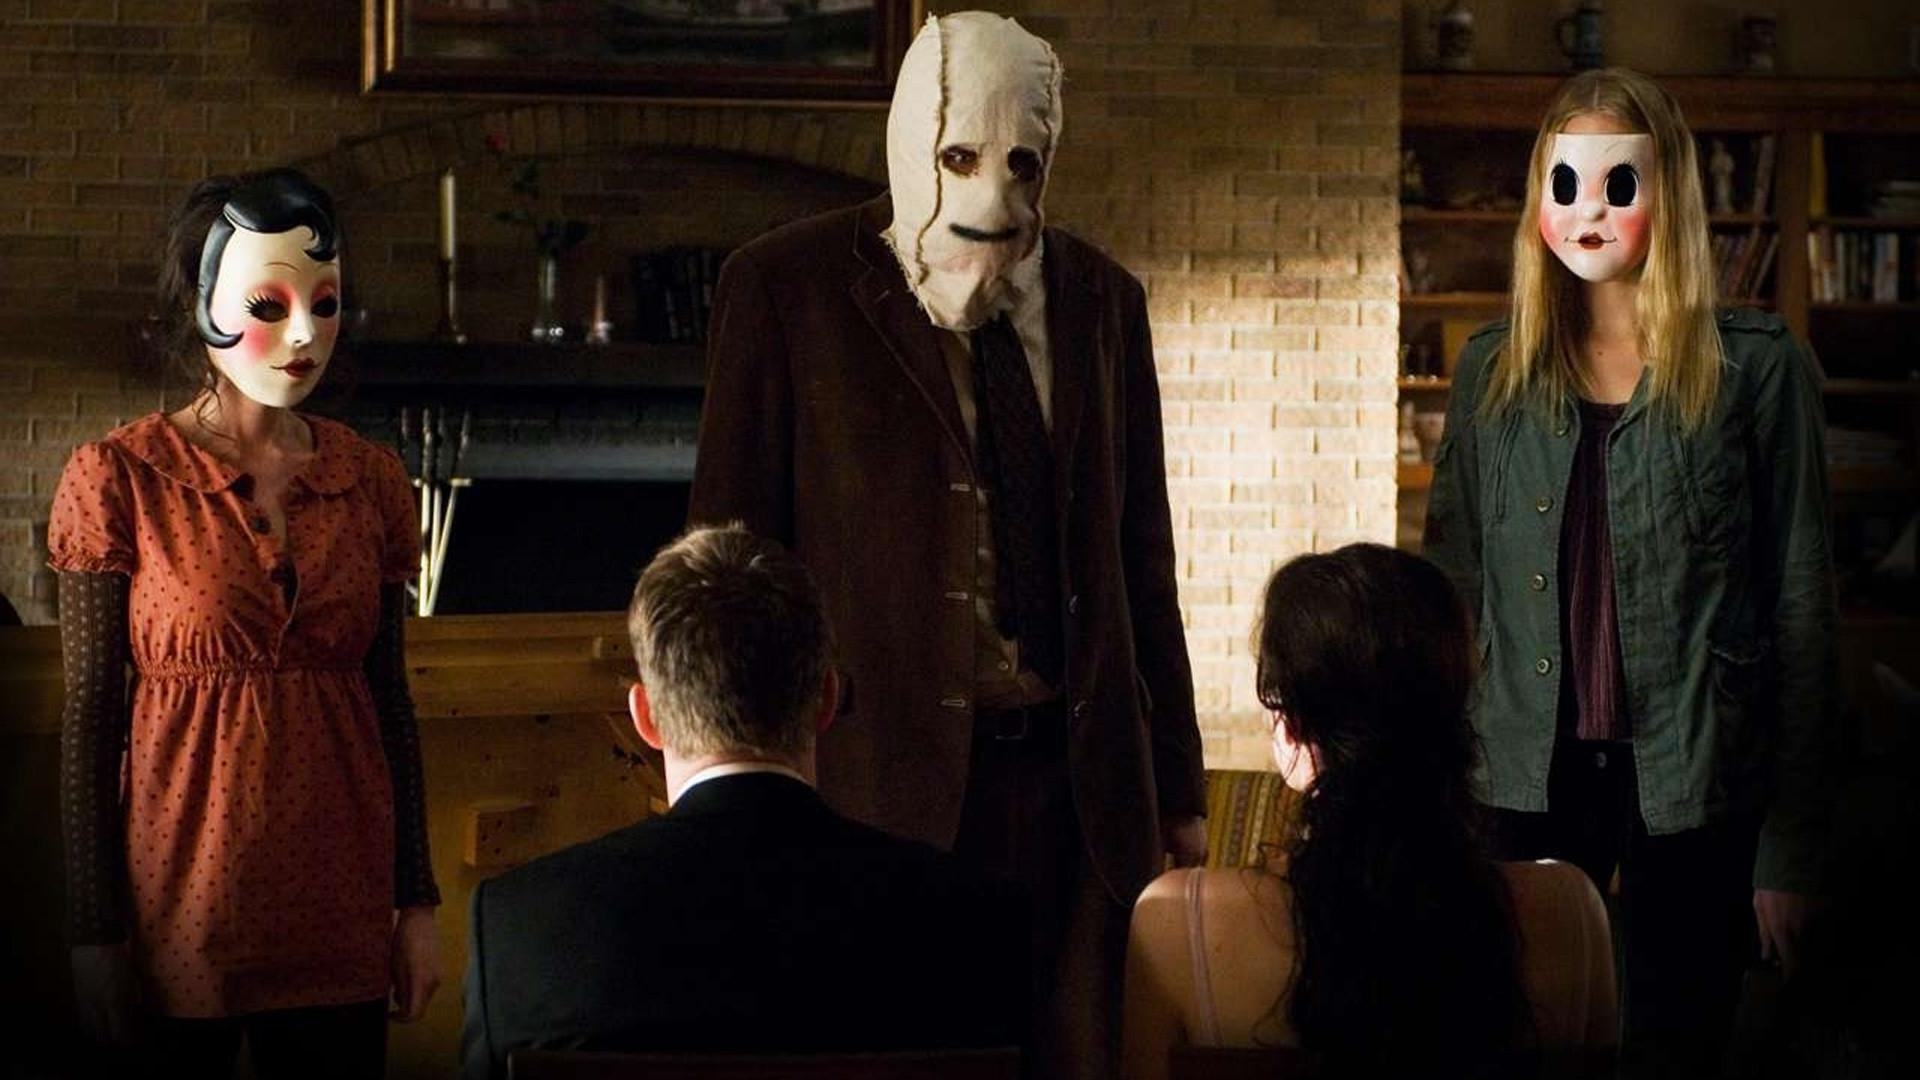 Three killers from the strangers standing in front of the two victims of the movie